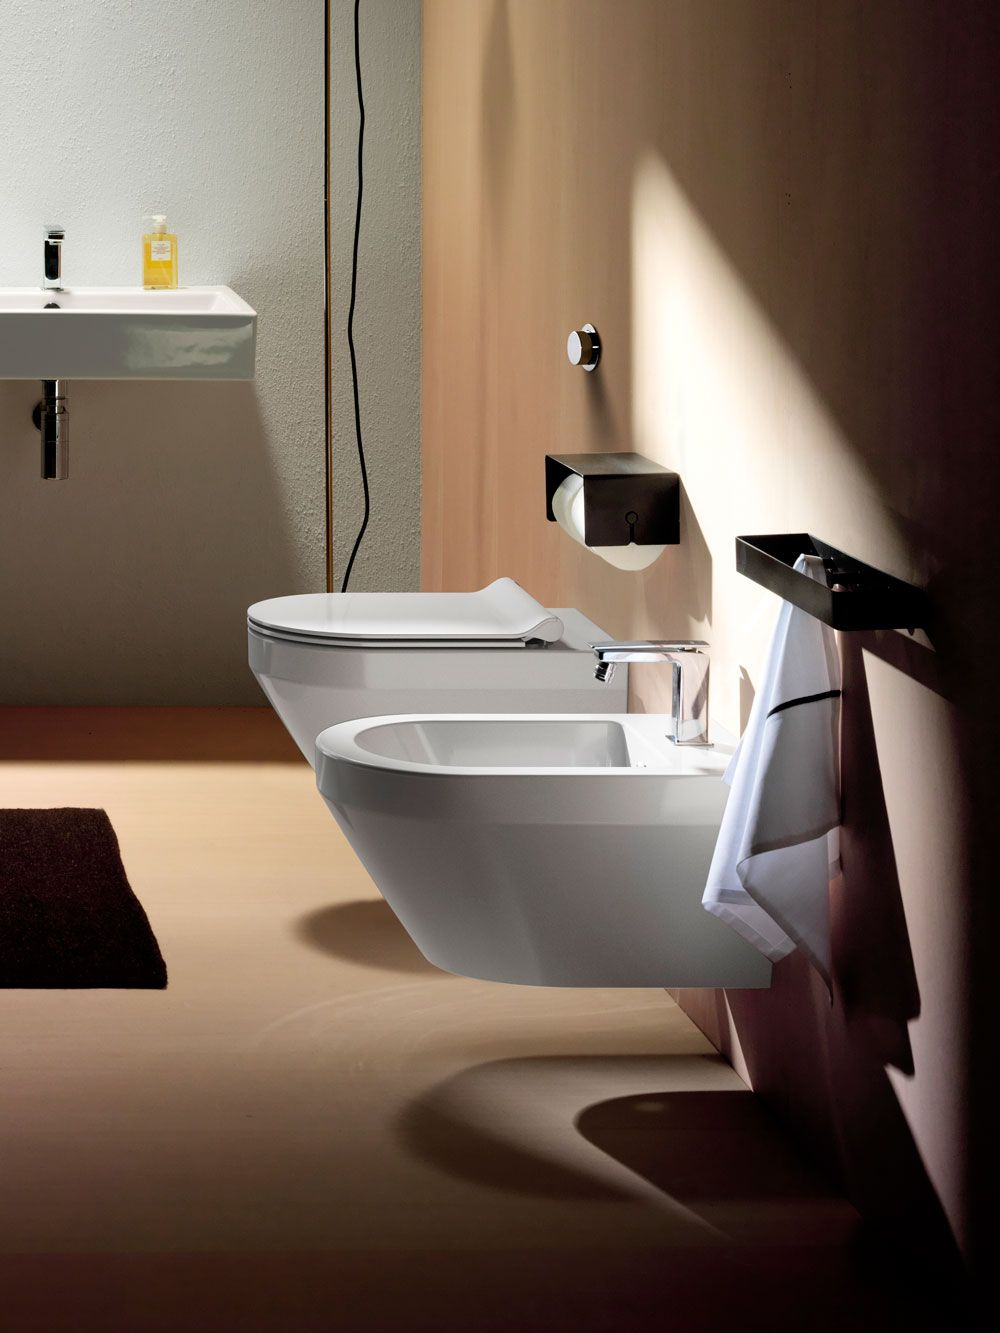 gsi ceramic kube collections wc bidet kube pinterest. Black Bedroom Furniture Sets. Home Design Ideas